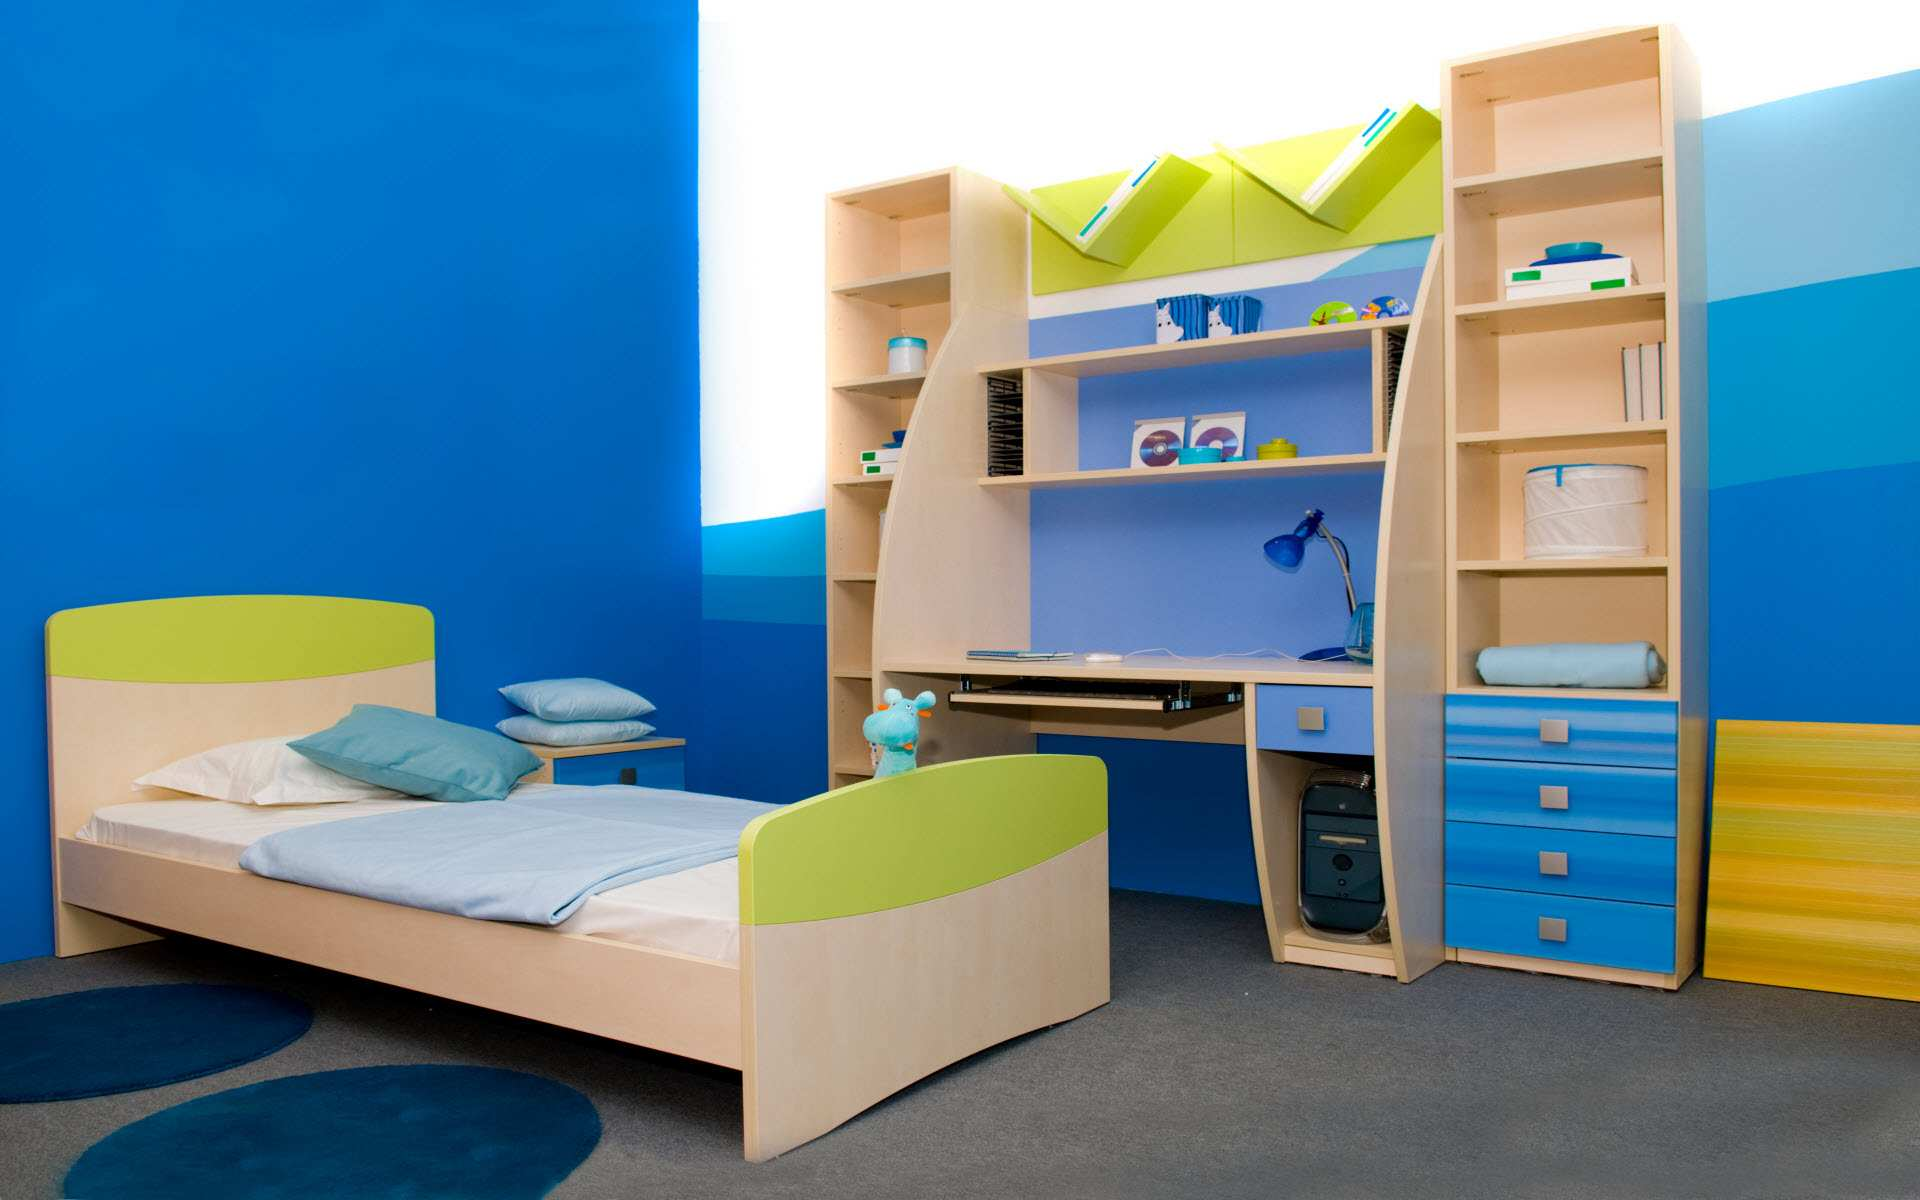 Kids Room Basic Decorating Principles